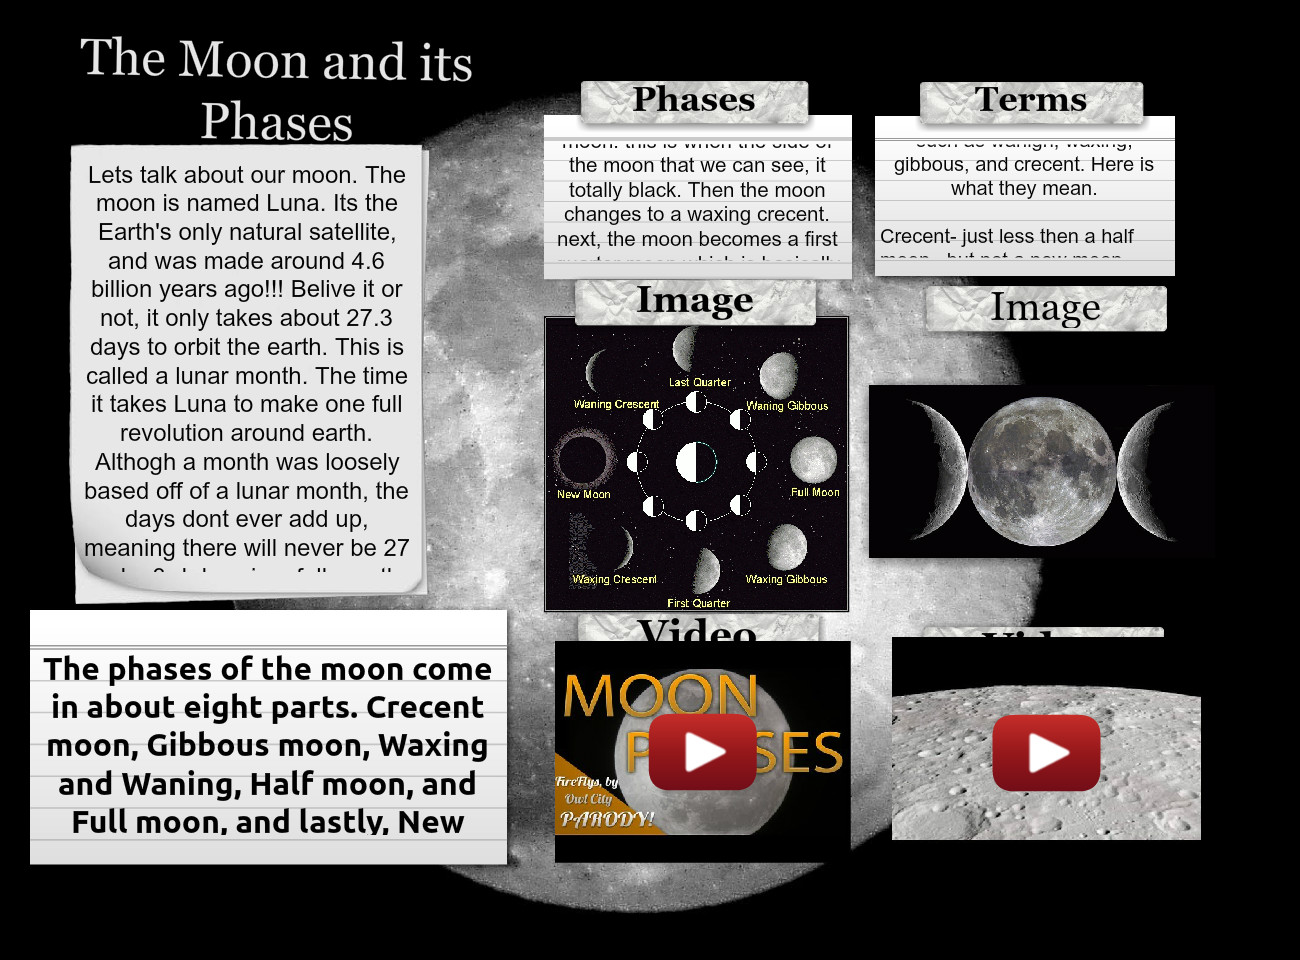 [2014] Alainna Toombs: The moon and its phases